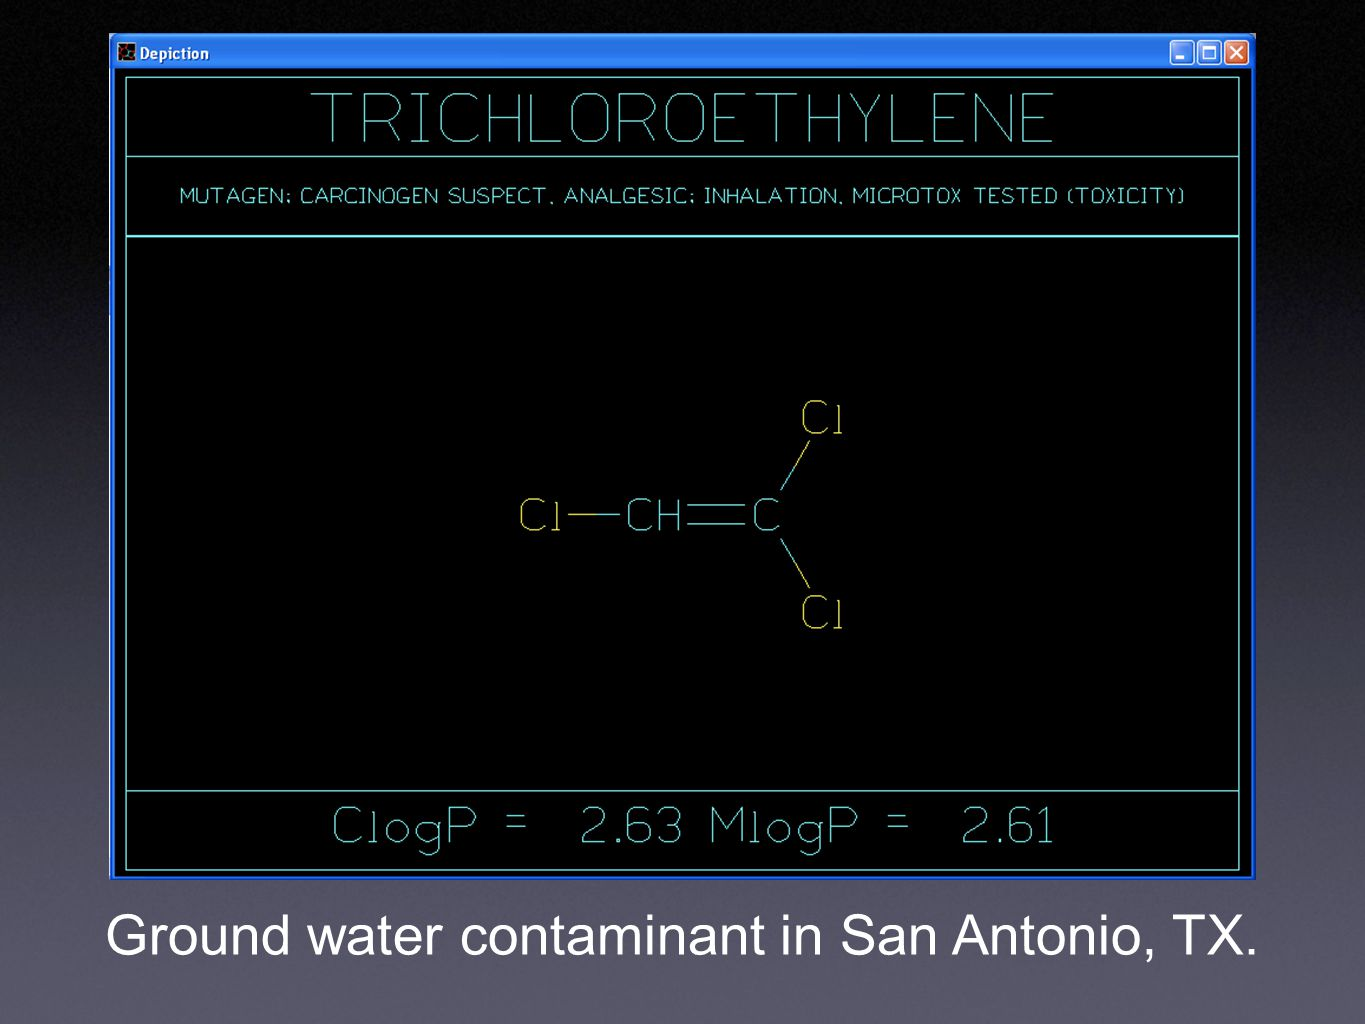 Ground water contaminant in San Antonio, TX.